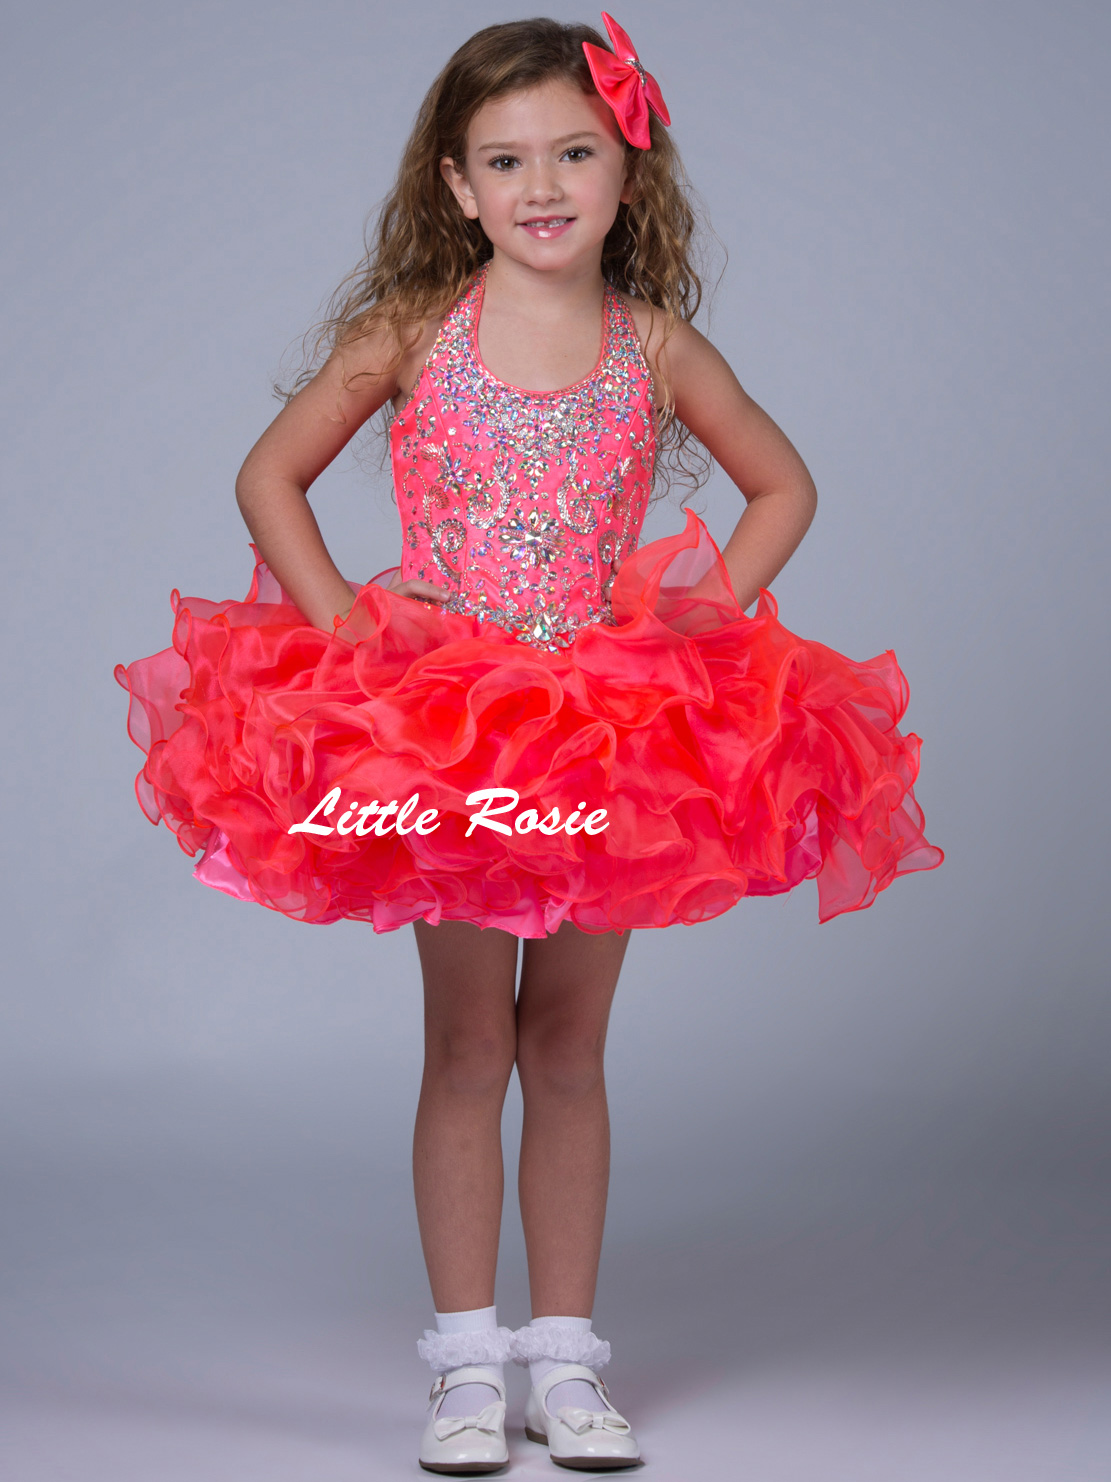 Little Rosie Pageant Halter Pageant Dress SR311|PageantDesigns.com